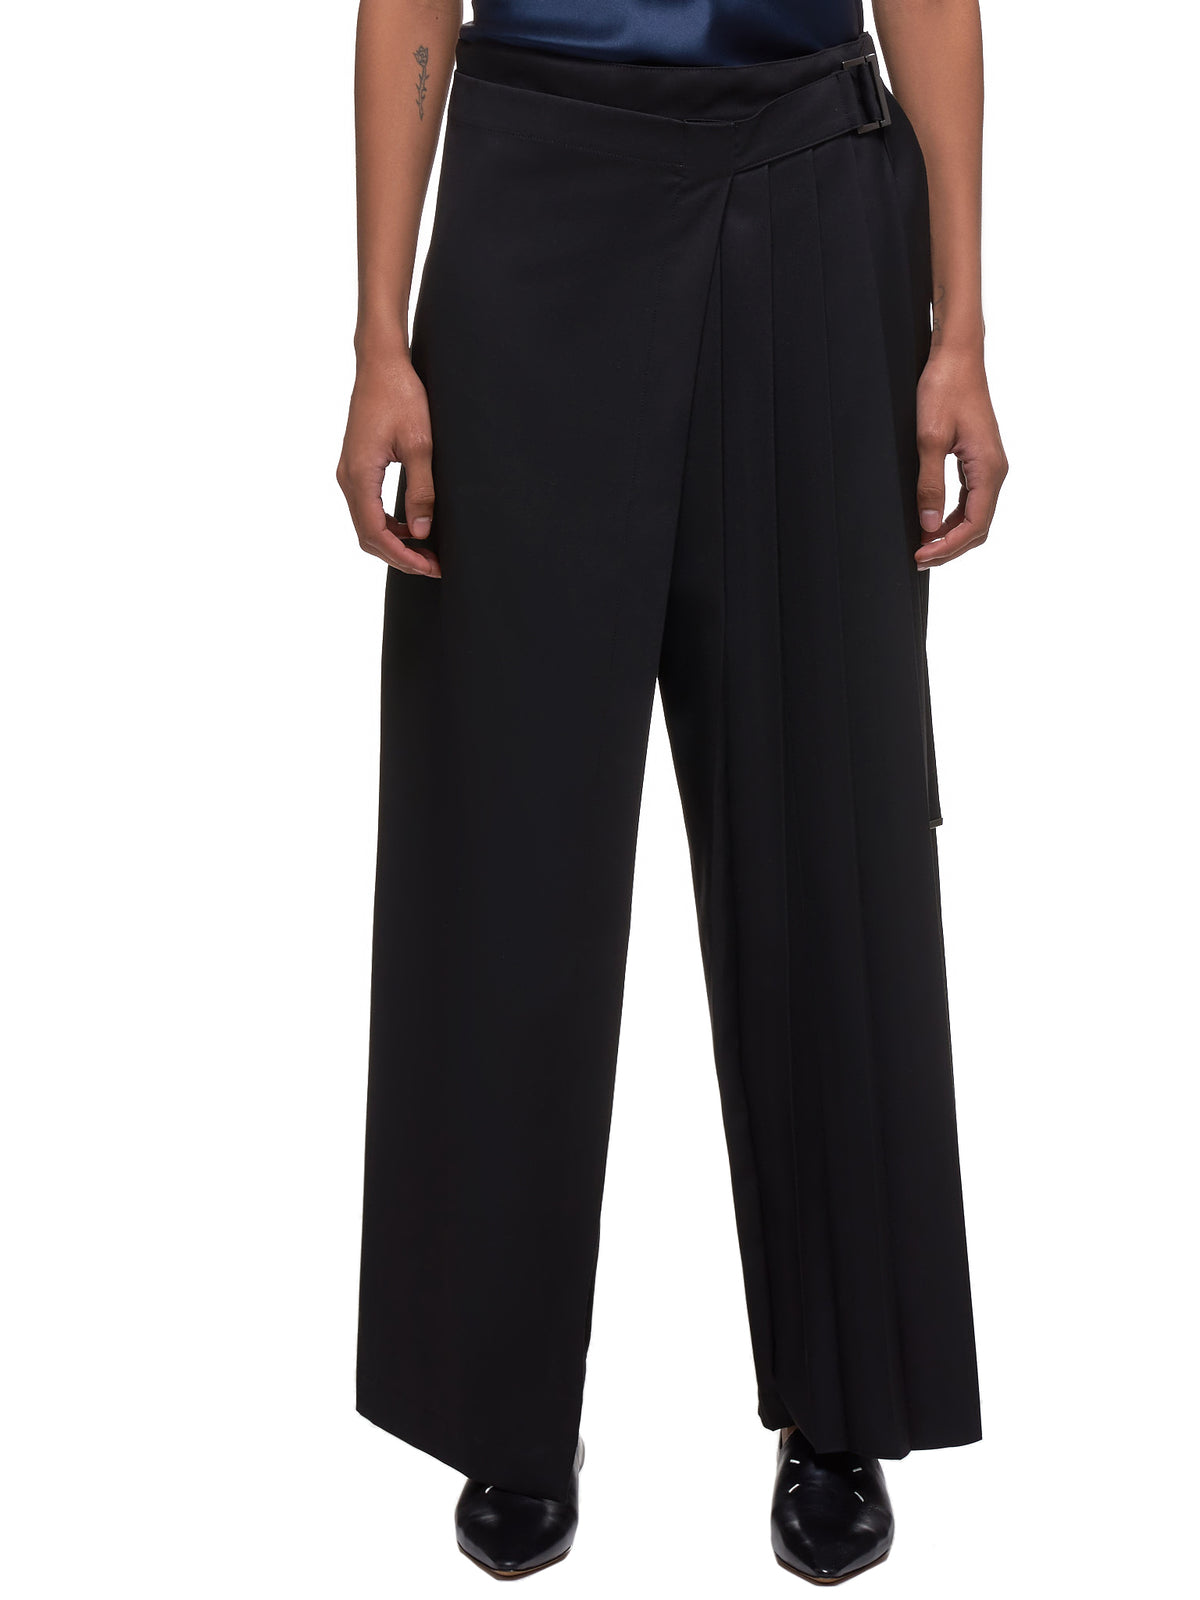 Pleated Trousers (YS-K90-945-BLACK)